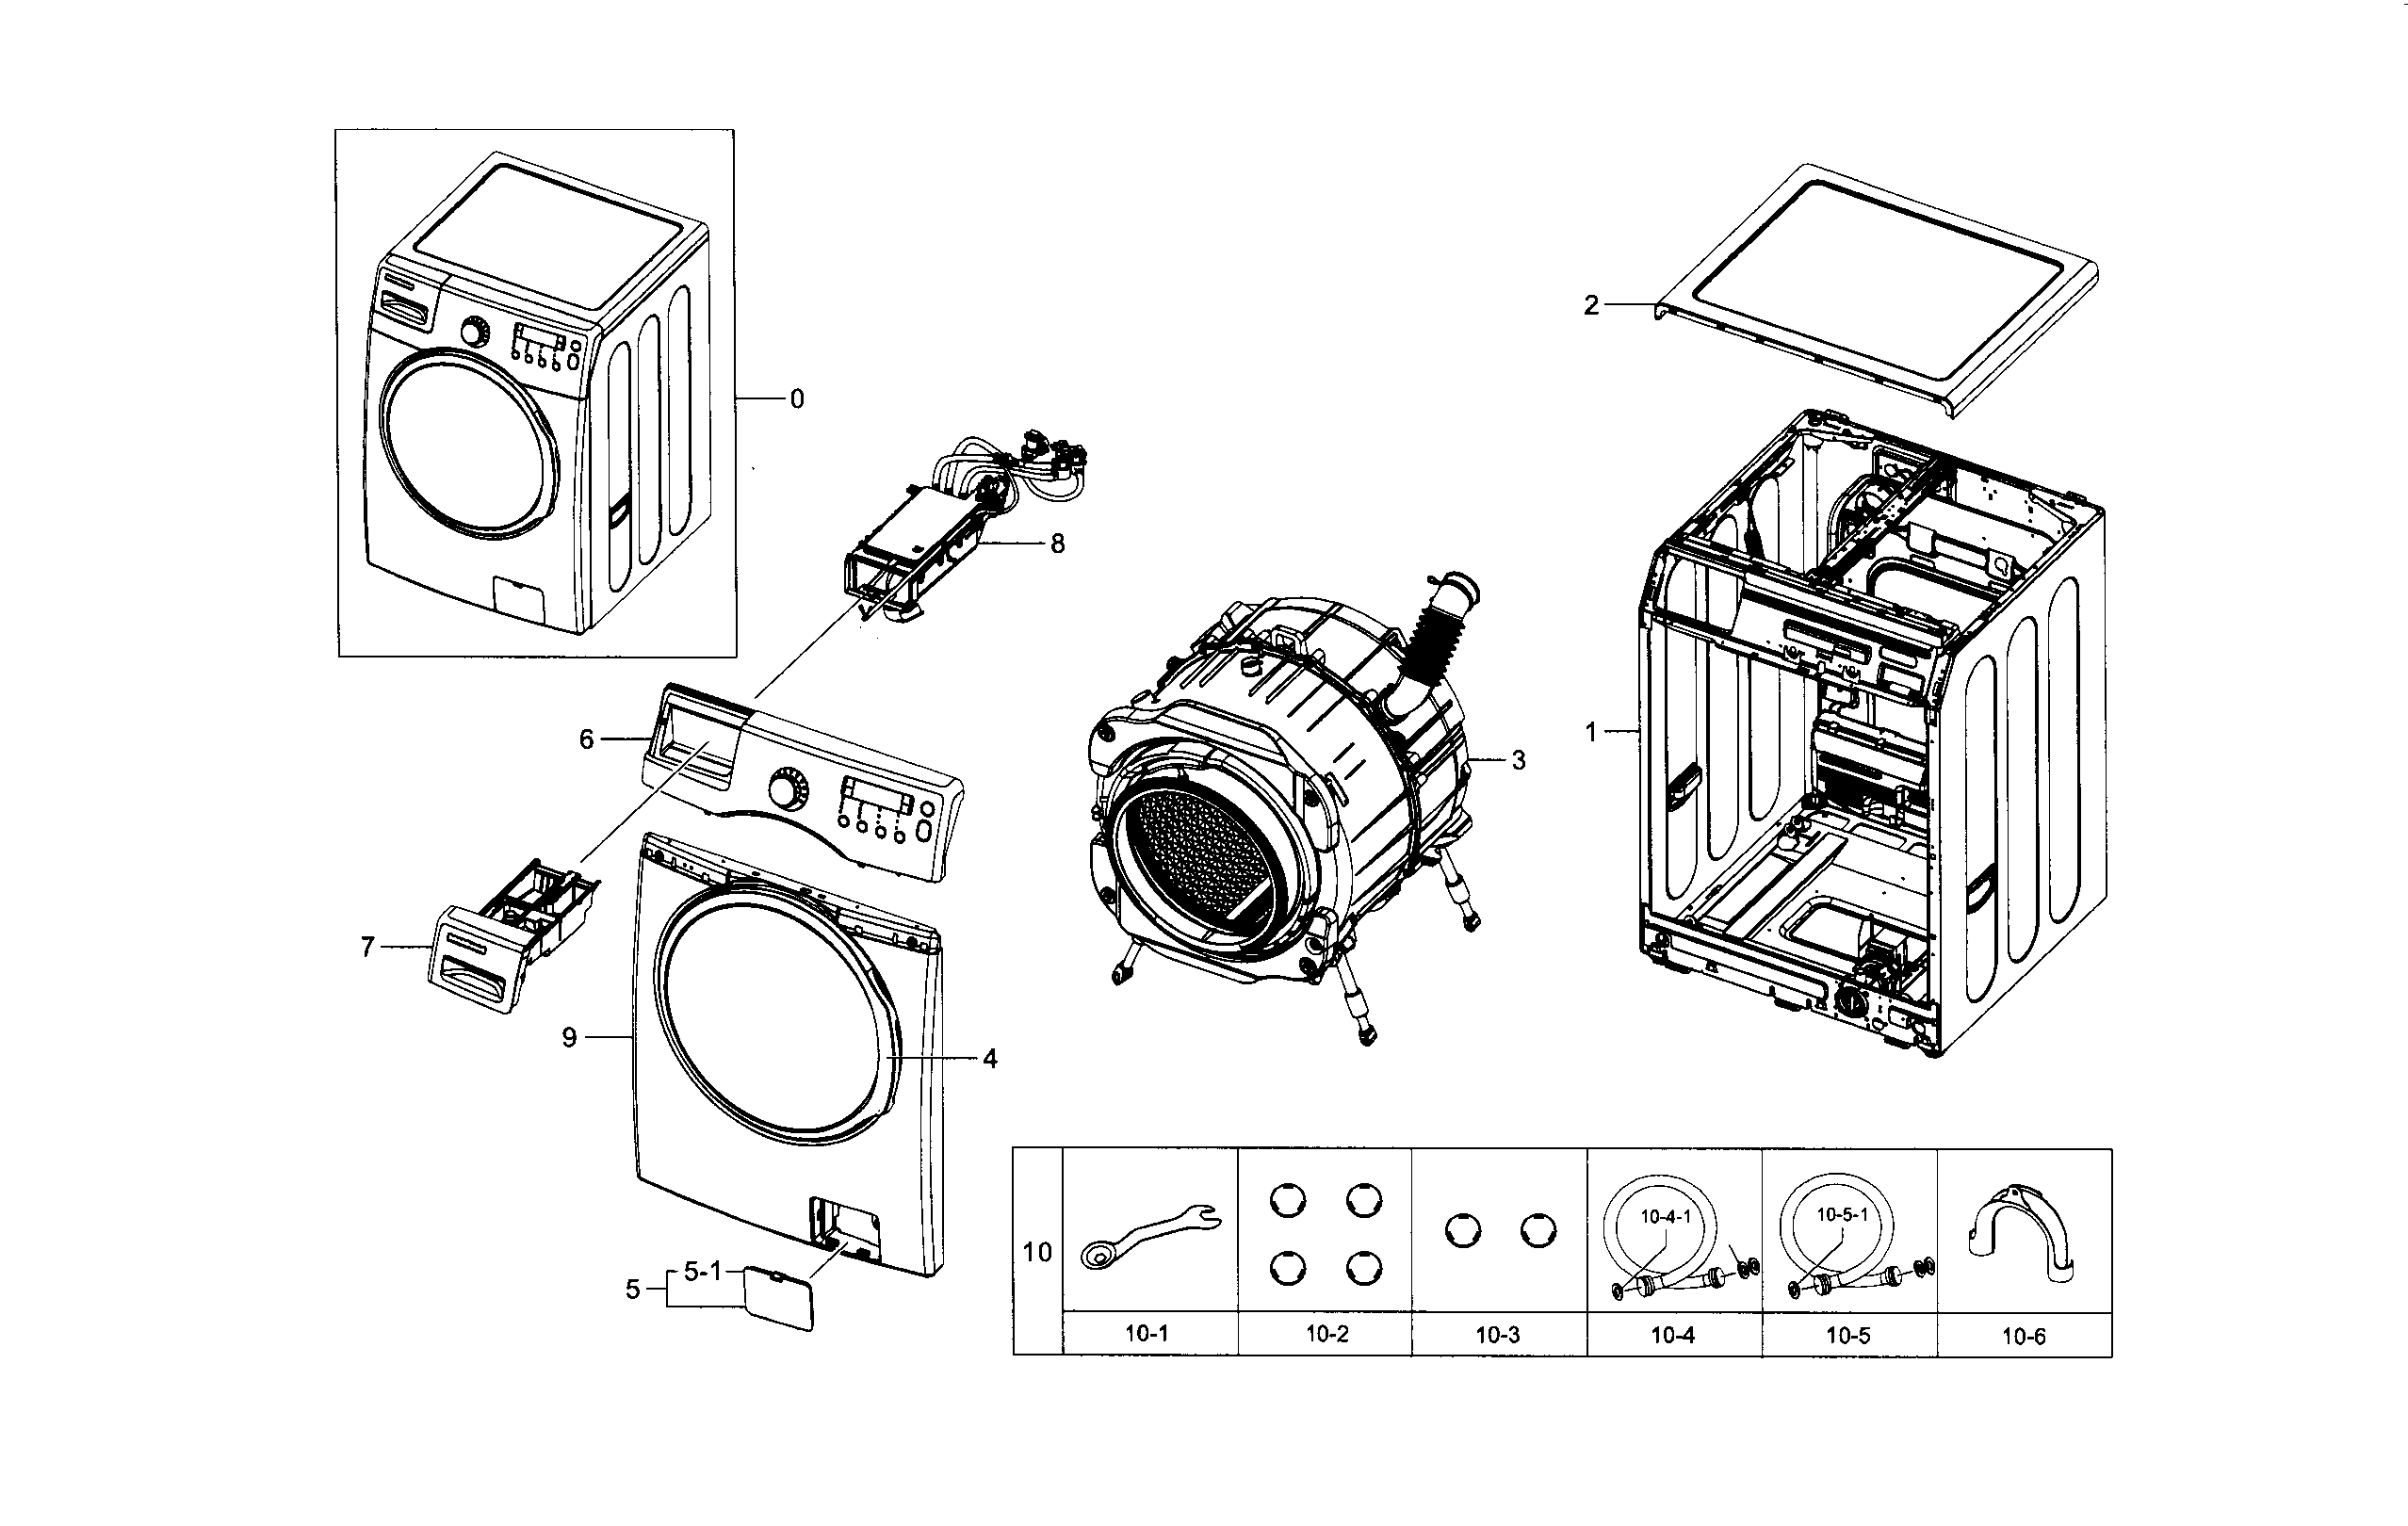 front load washer parts diagram 97 s10 stereo wiring samsung model wf330anwxaa0005 sears